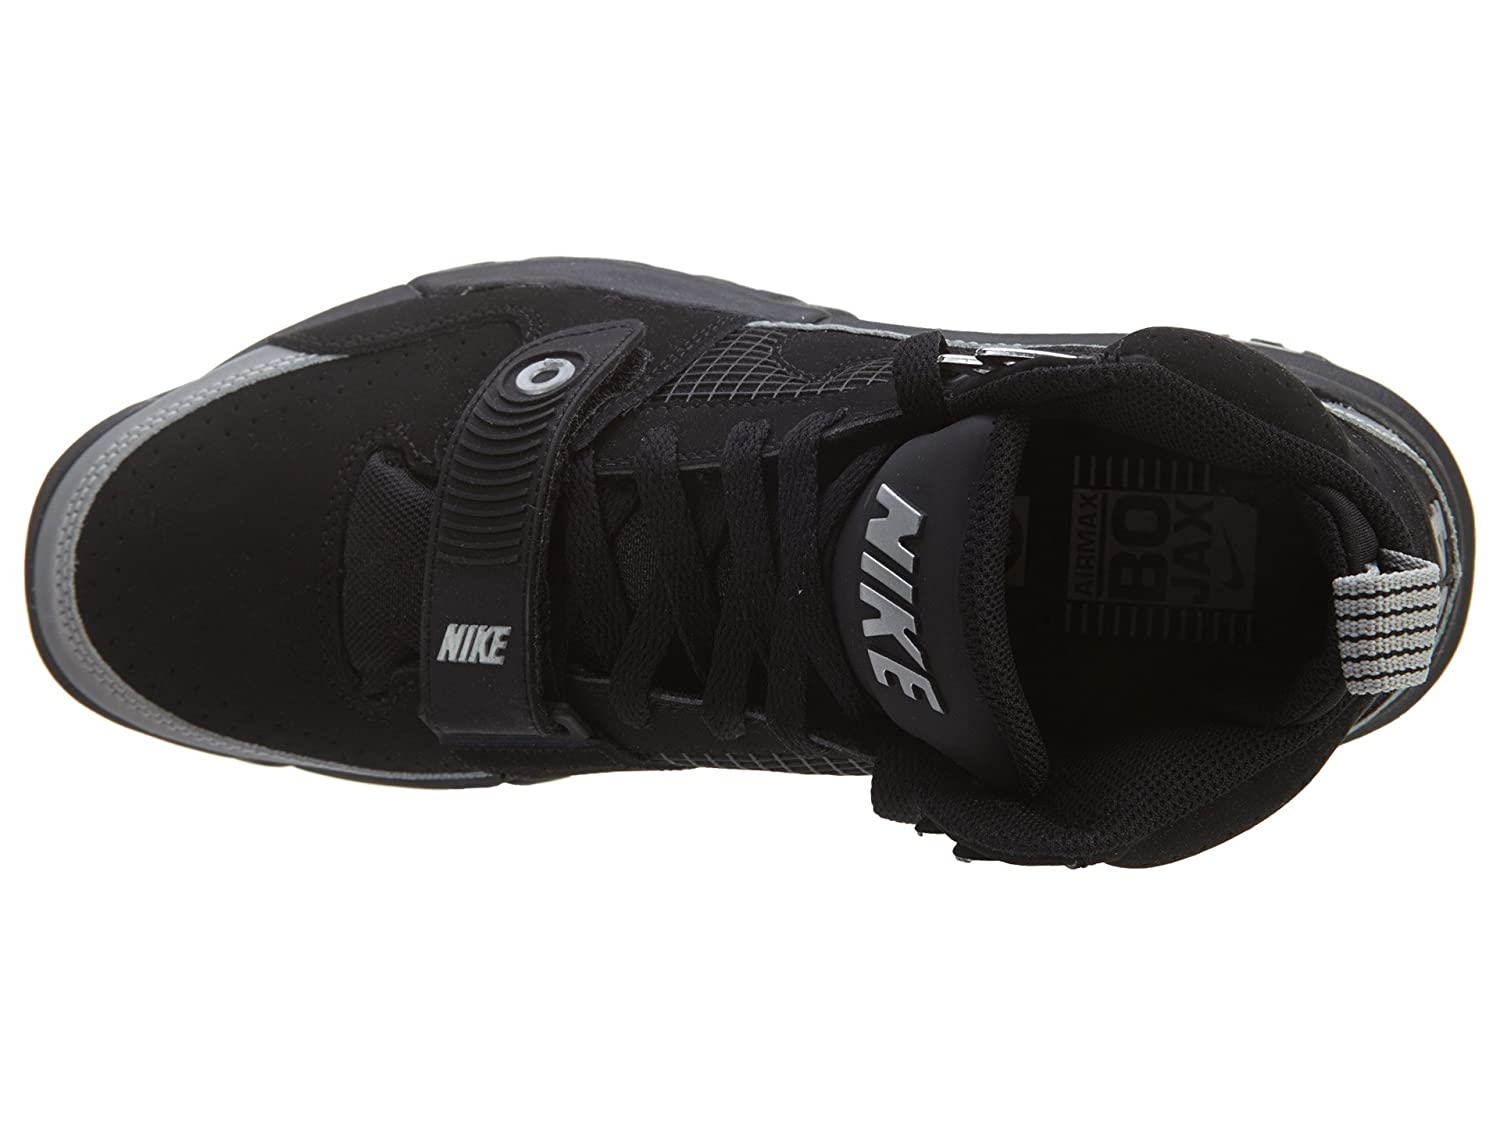 outlet store be9bf d99b3 Amazon.com   NIKE Air Max BO Jax Mens Style  654478-001 Size  7.5    Basketball